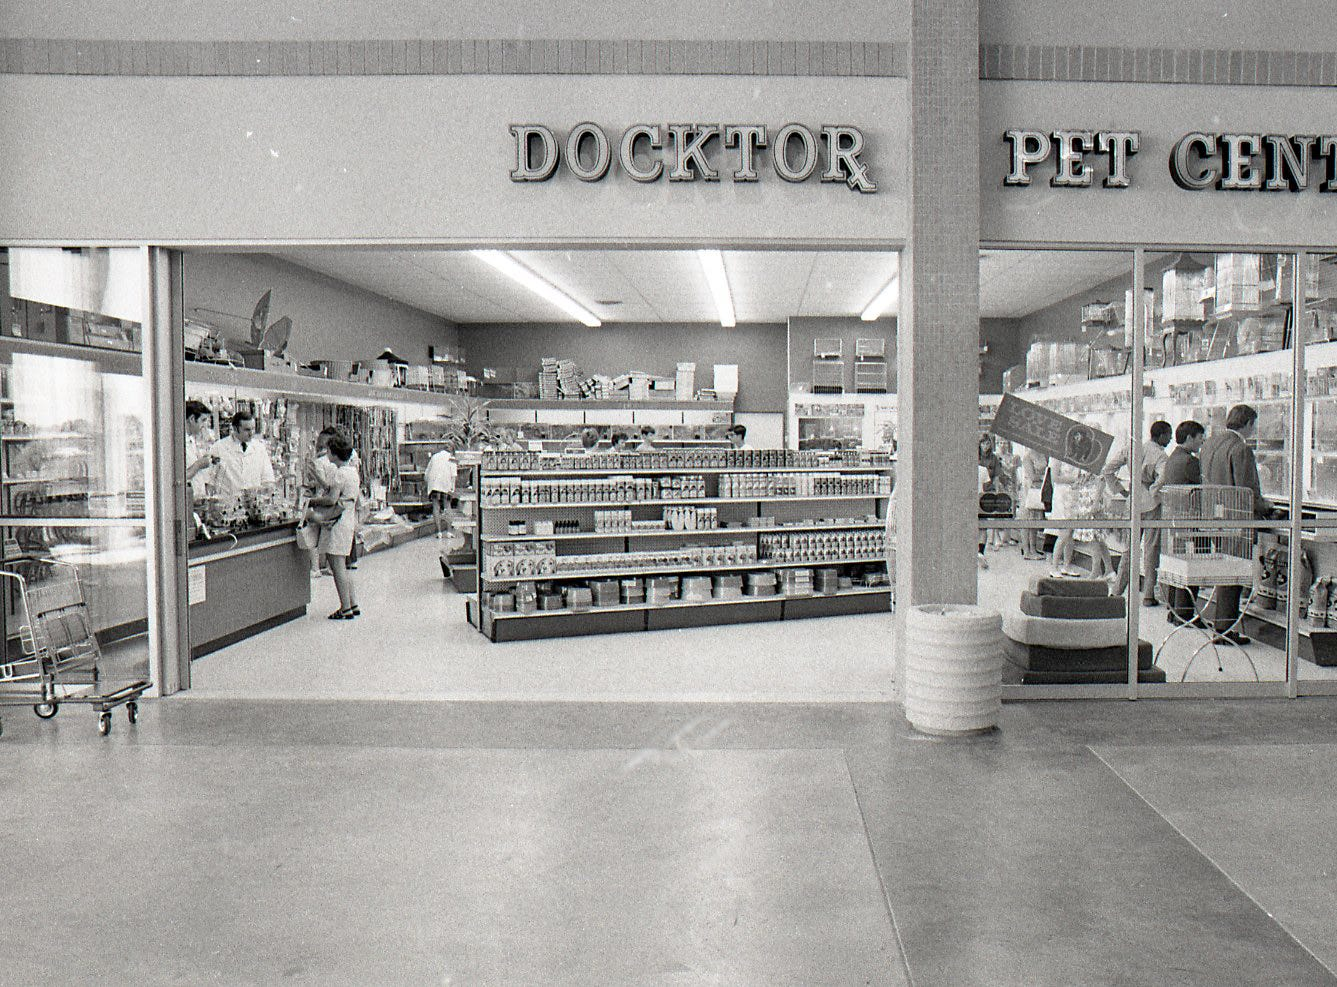 The Docktor Pet Center was one of the businesses inside Padre Staples Mall when it opened in July 1970.